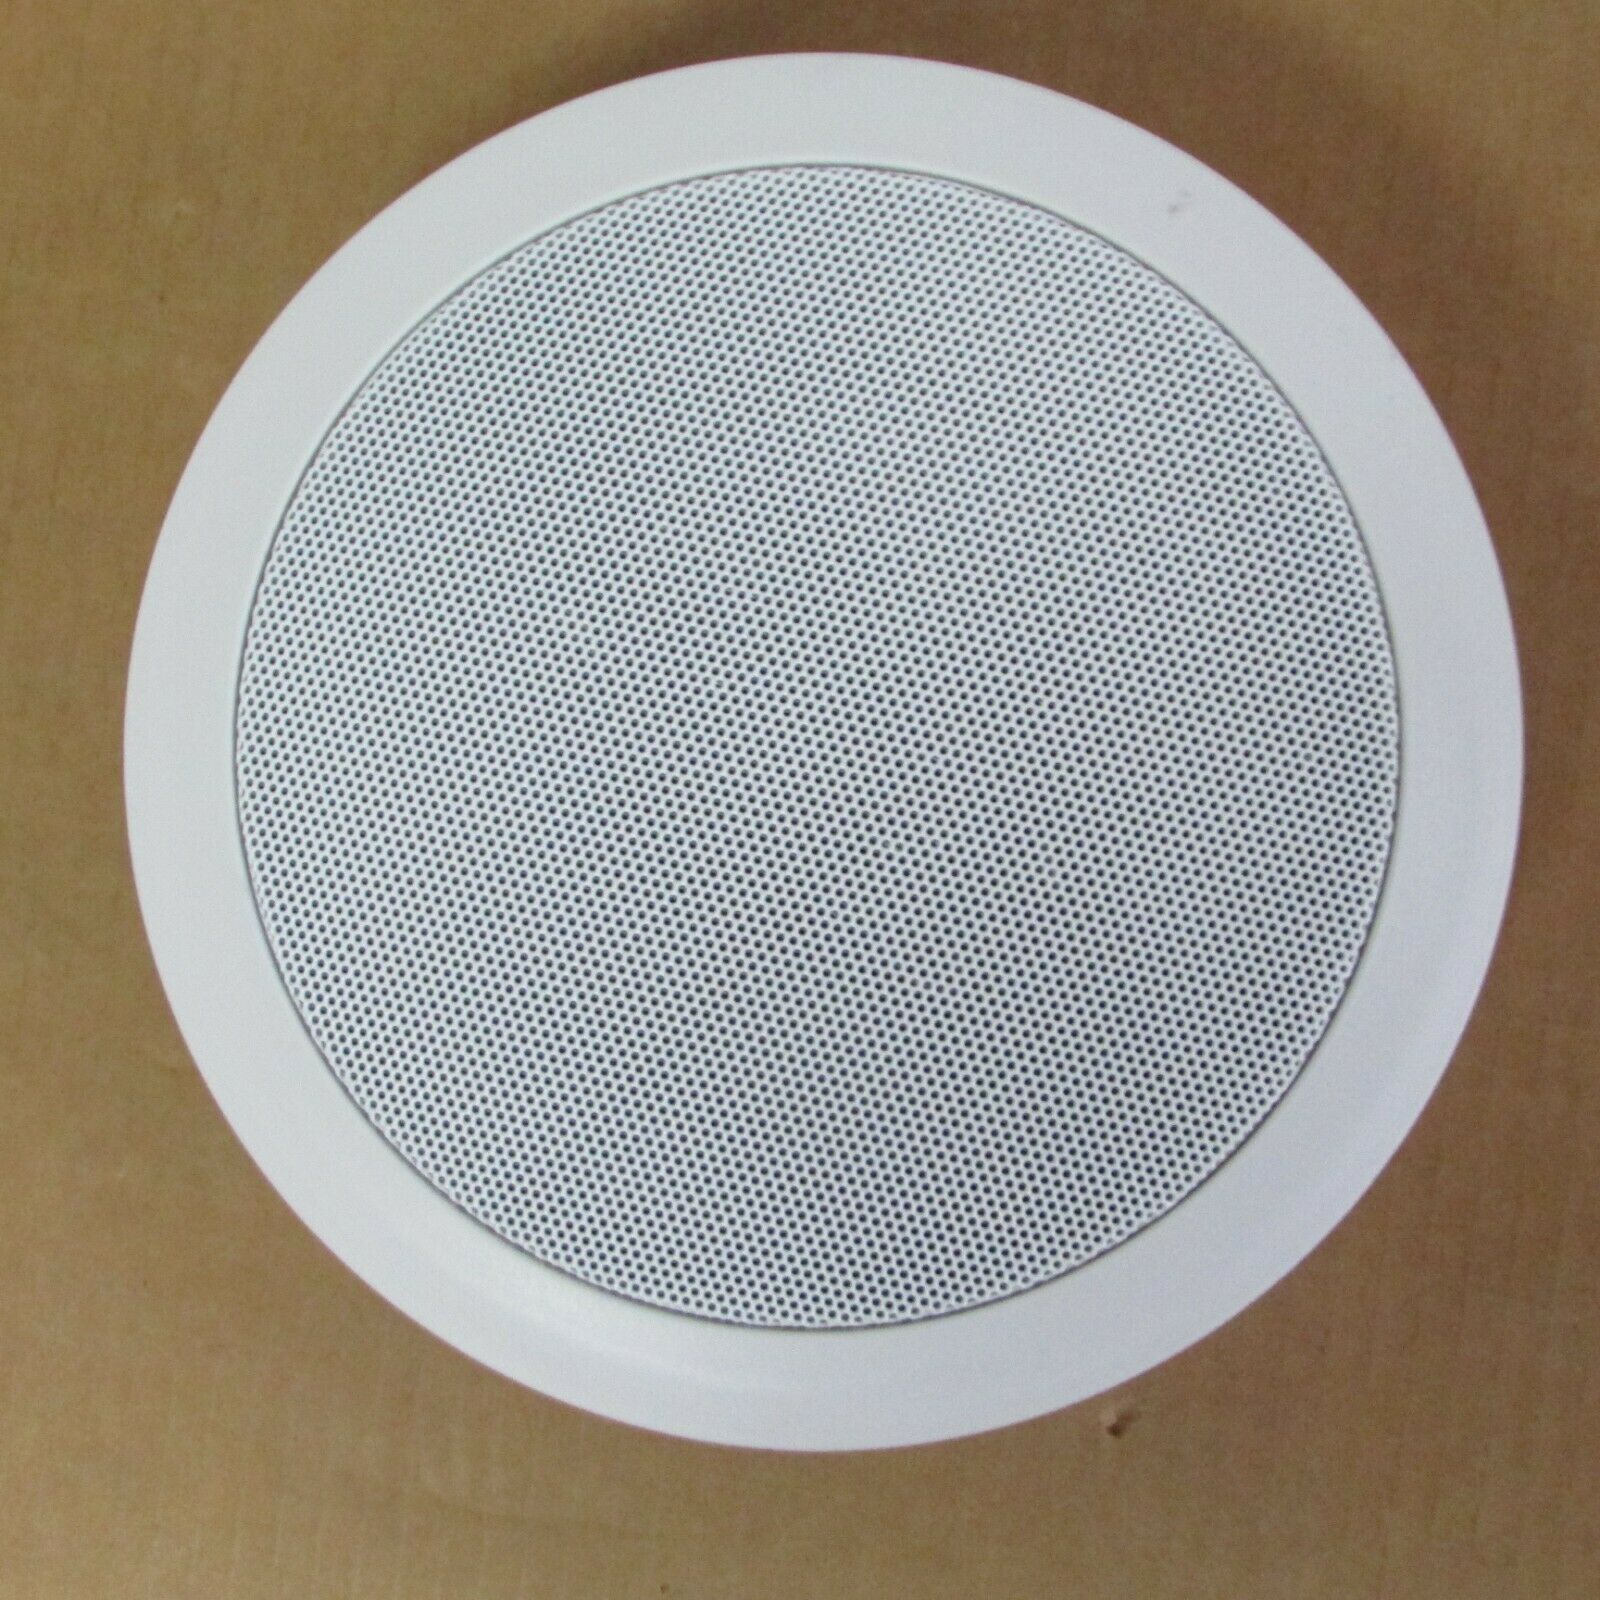 Weather resistant ceiling speakers ring doorbell rain shield